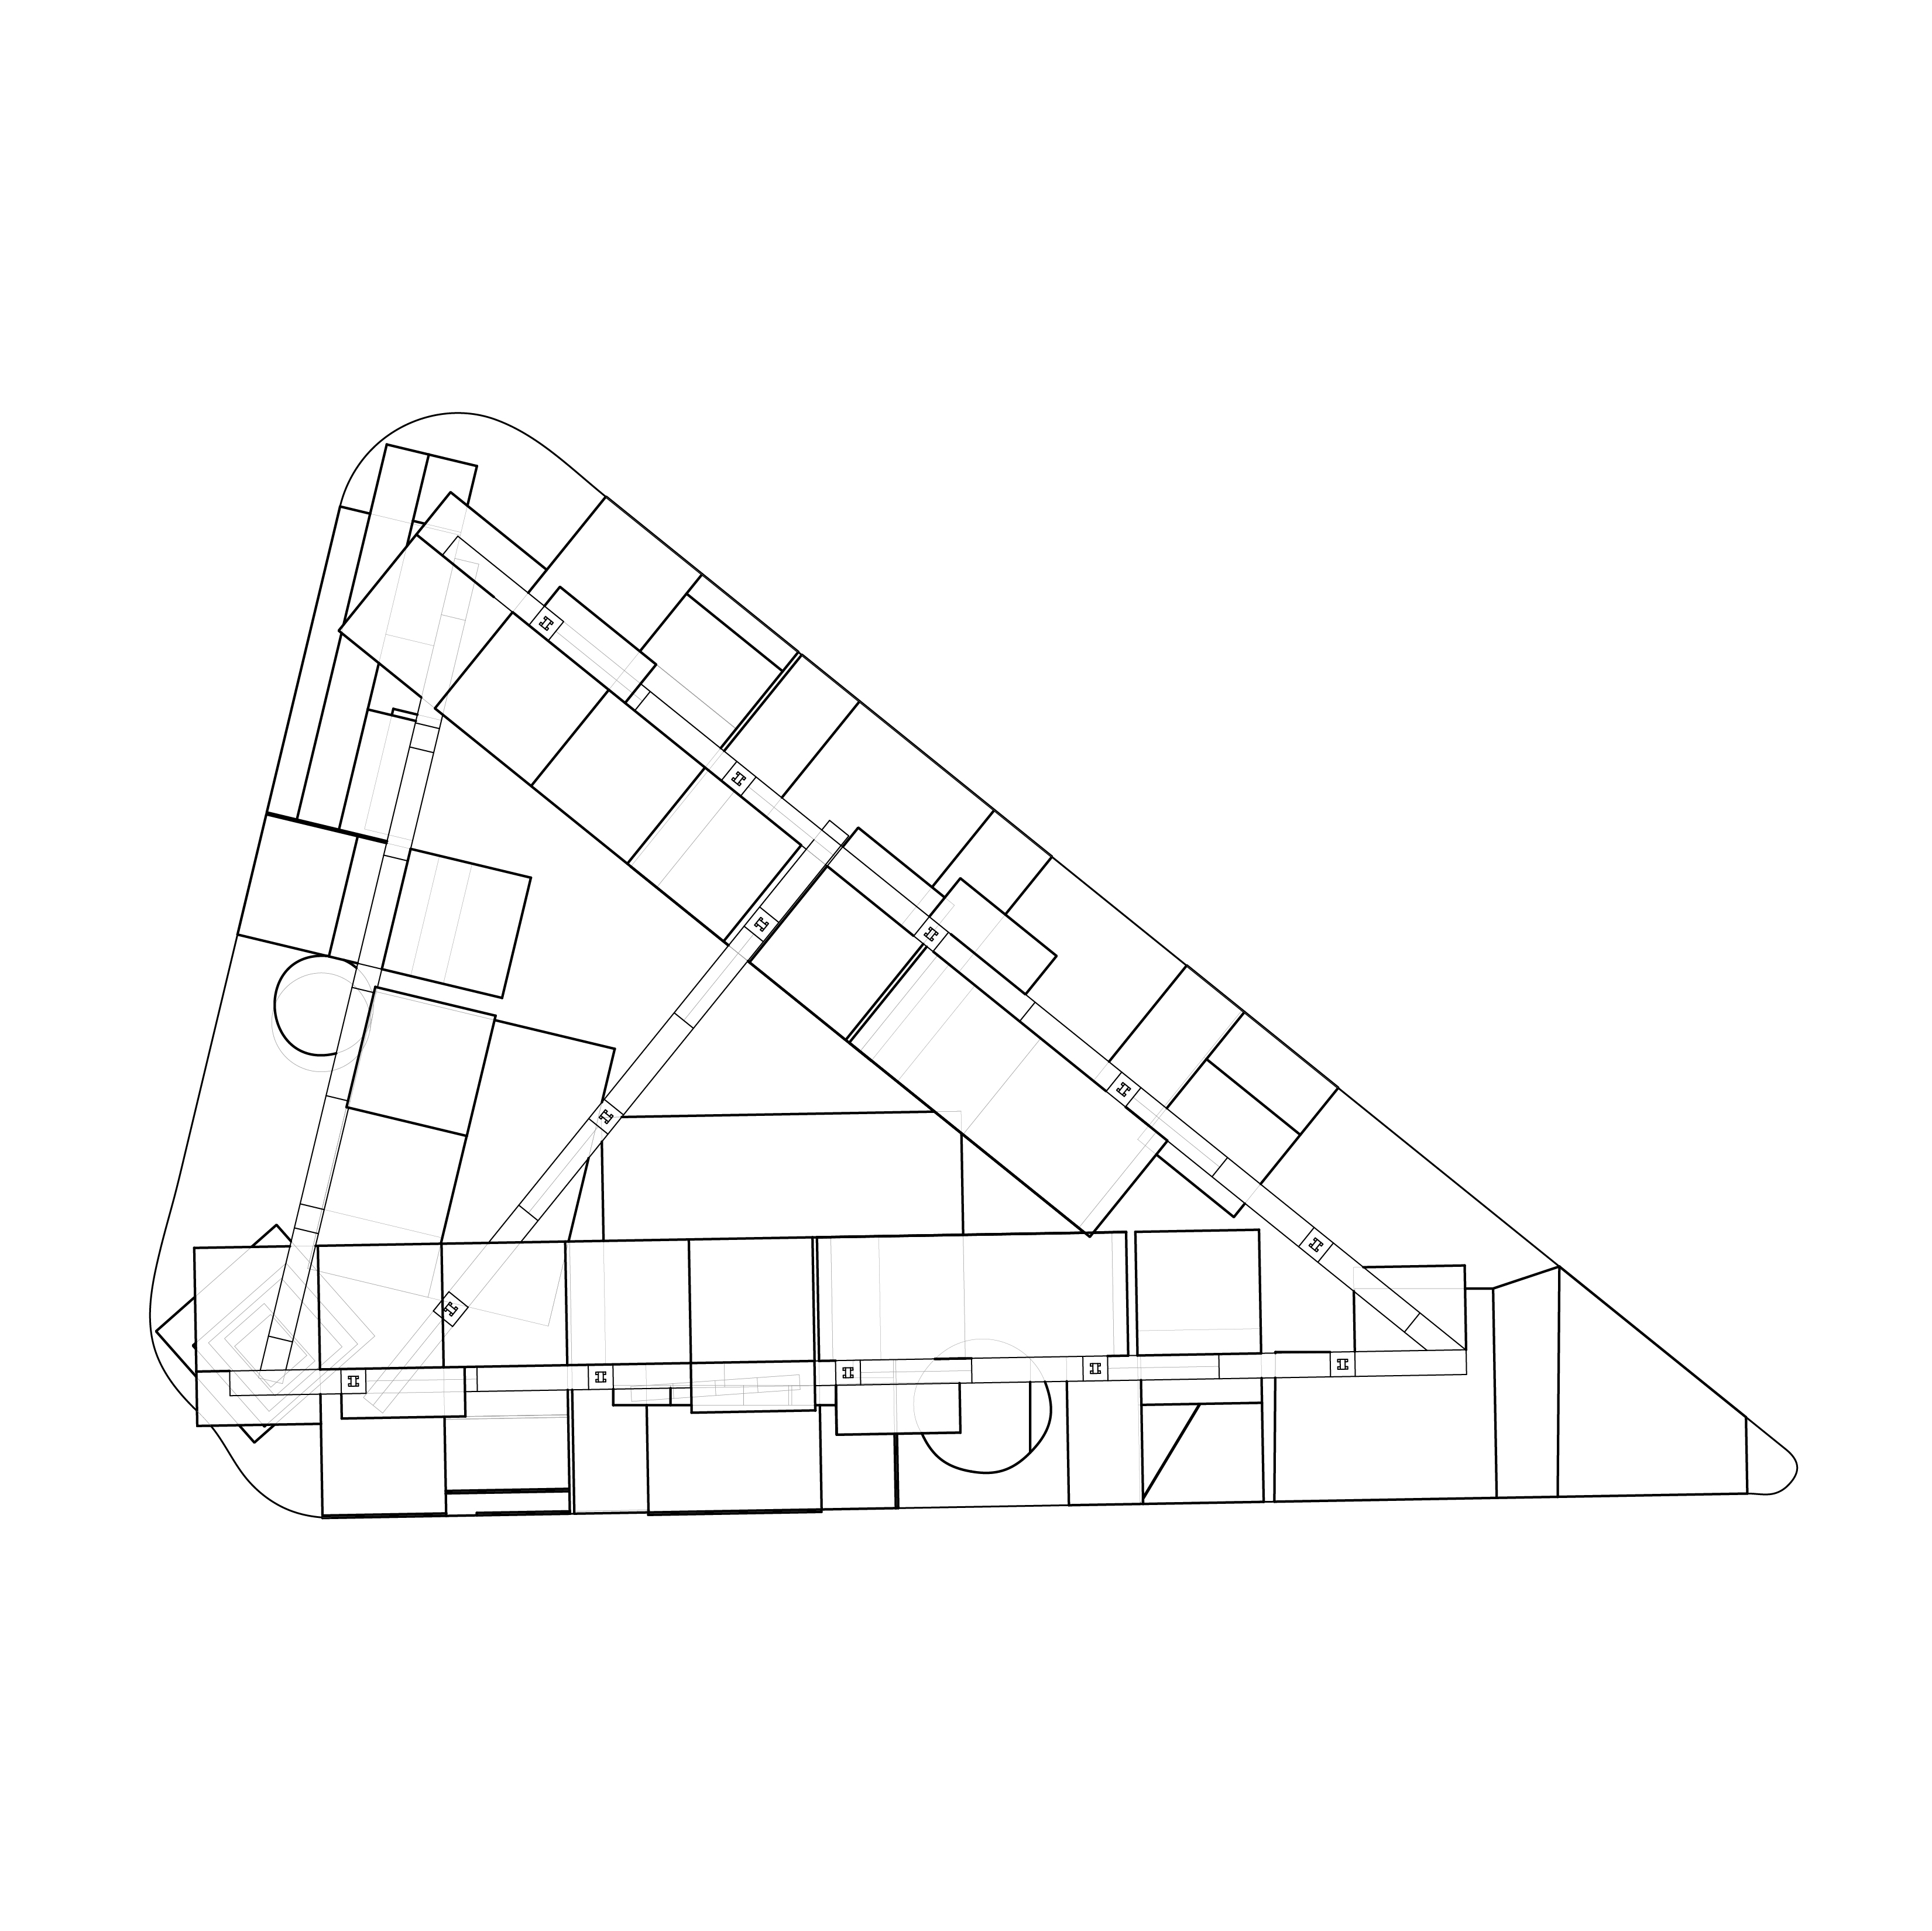 zone plans [Converted]-02